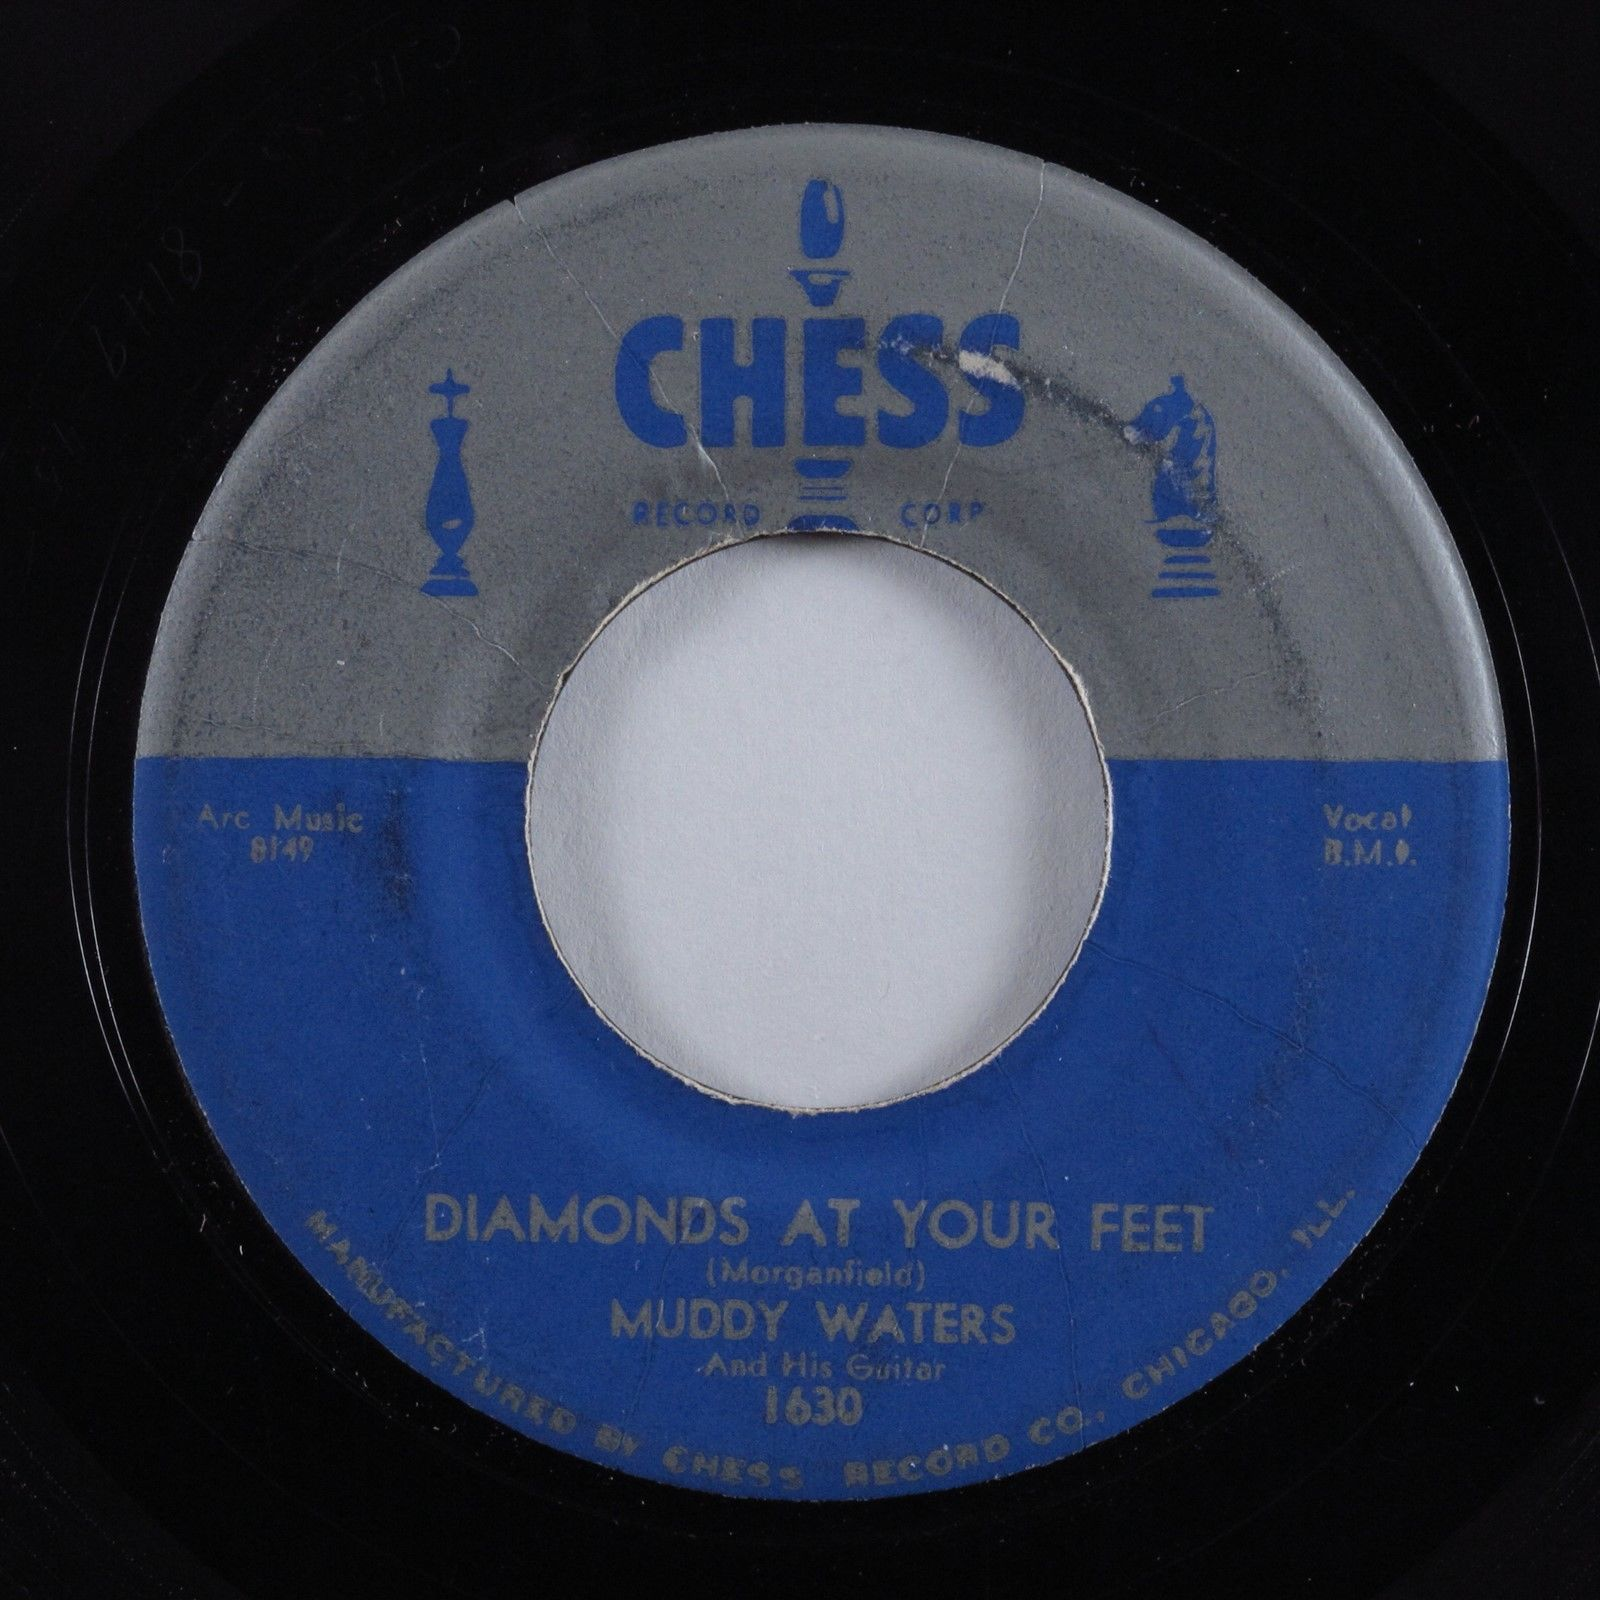 R&B Blues 45 MUDDY WATERS Diamonds At Your Feet CHESS HEAR